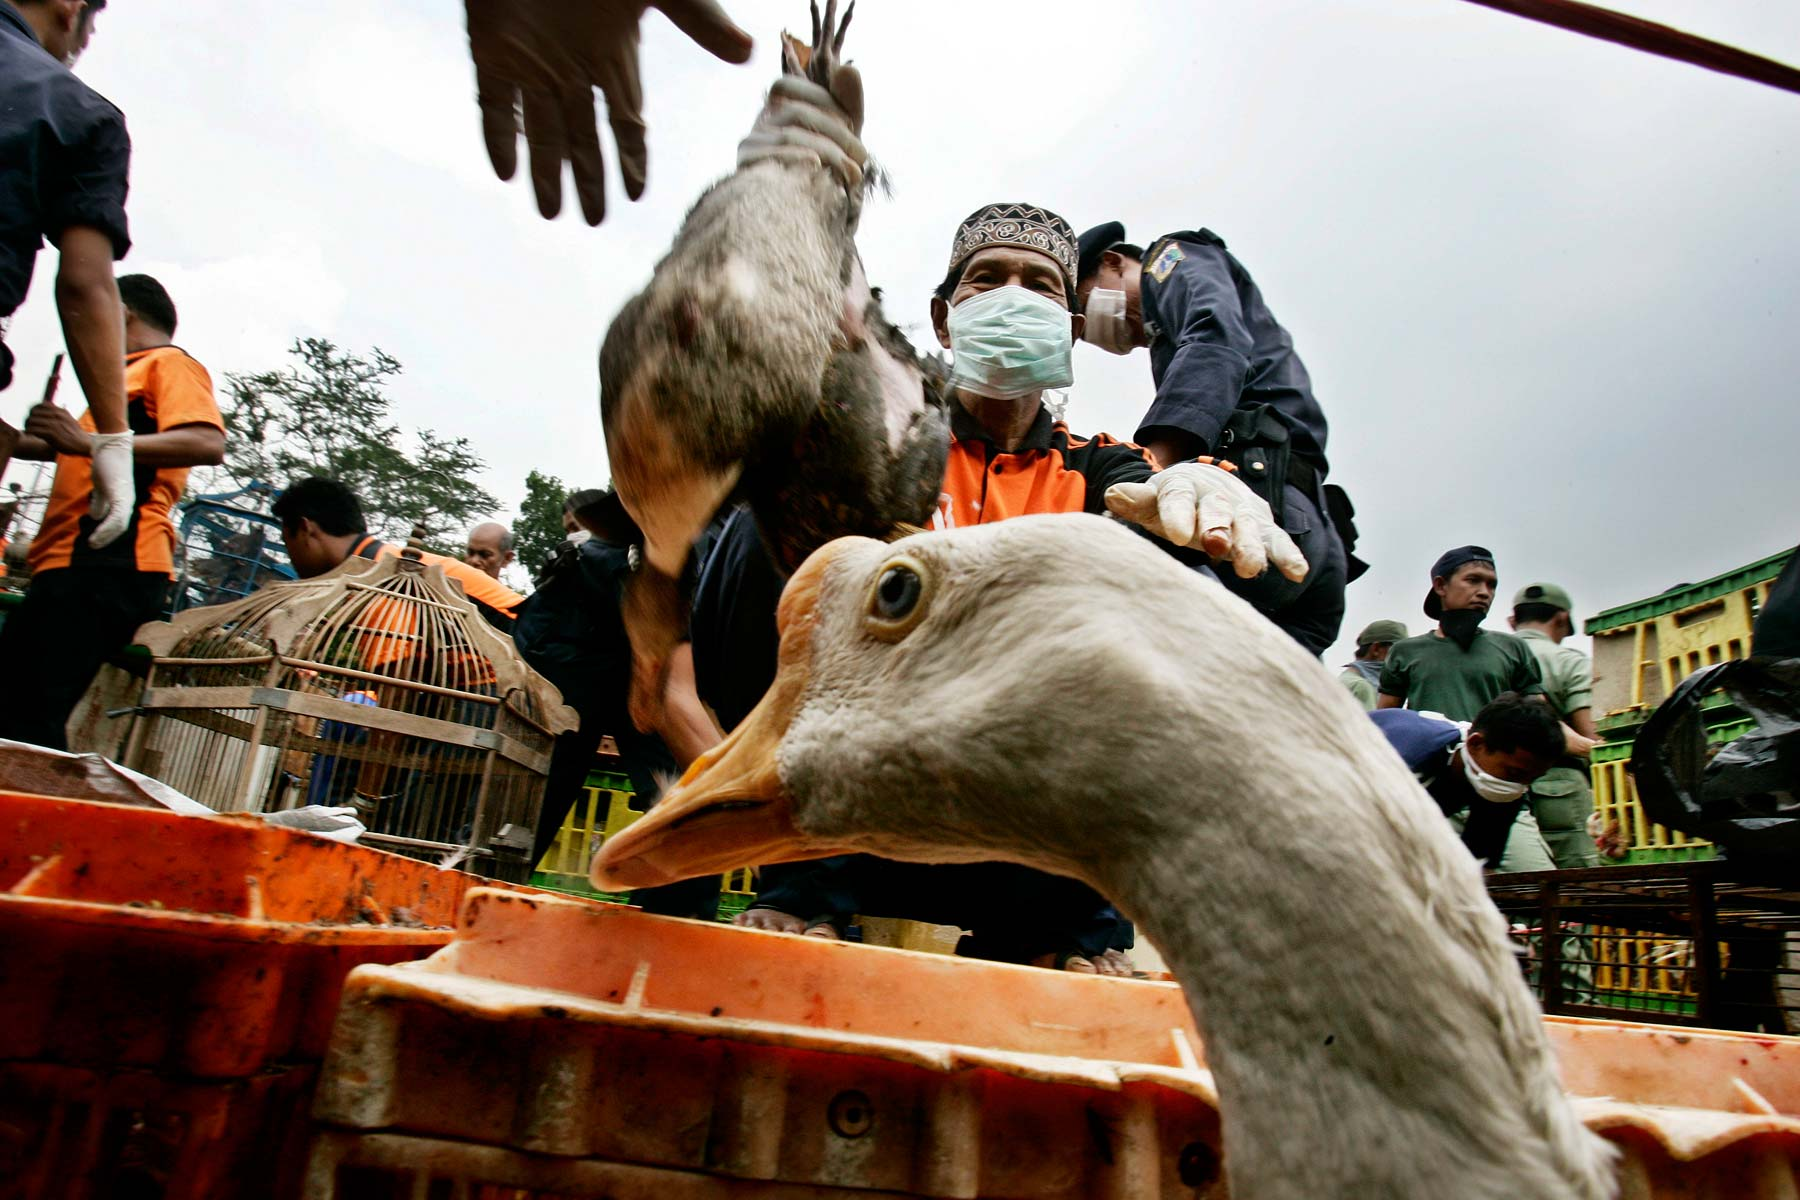 Indonesia Health Officials collect poultry after bird flue outbreak in Jakarta